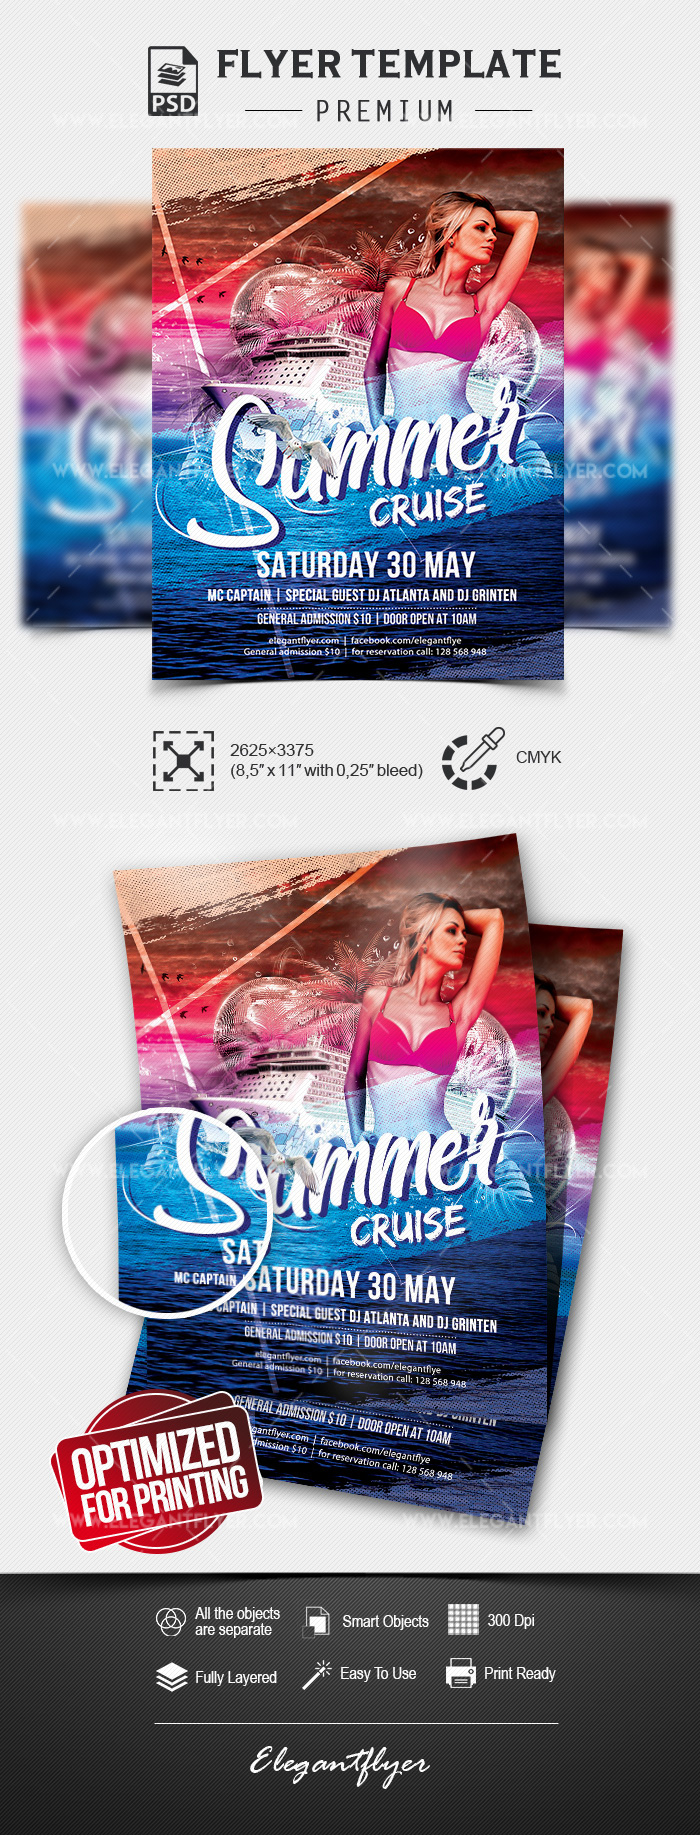 Summer Cruise – Premium Flyer Template in PSD